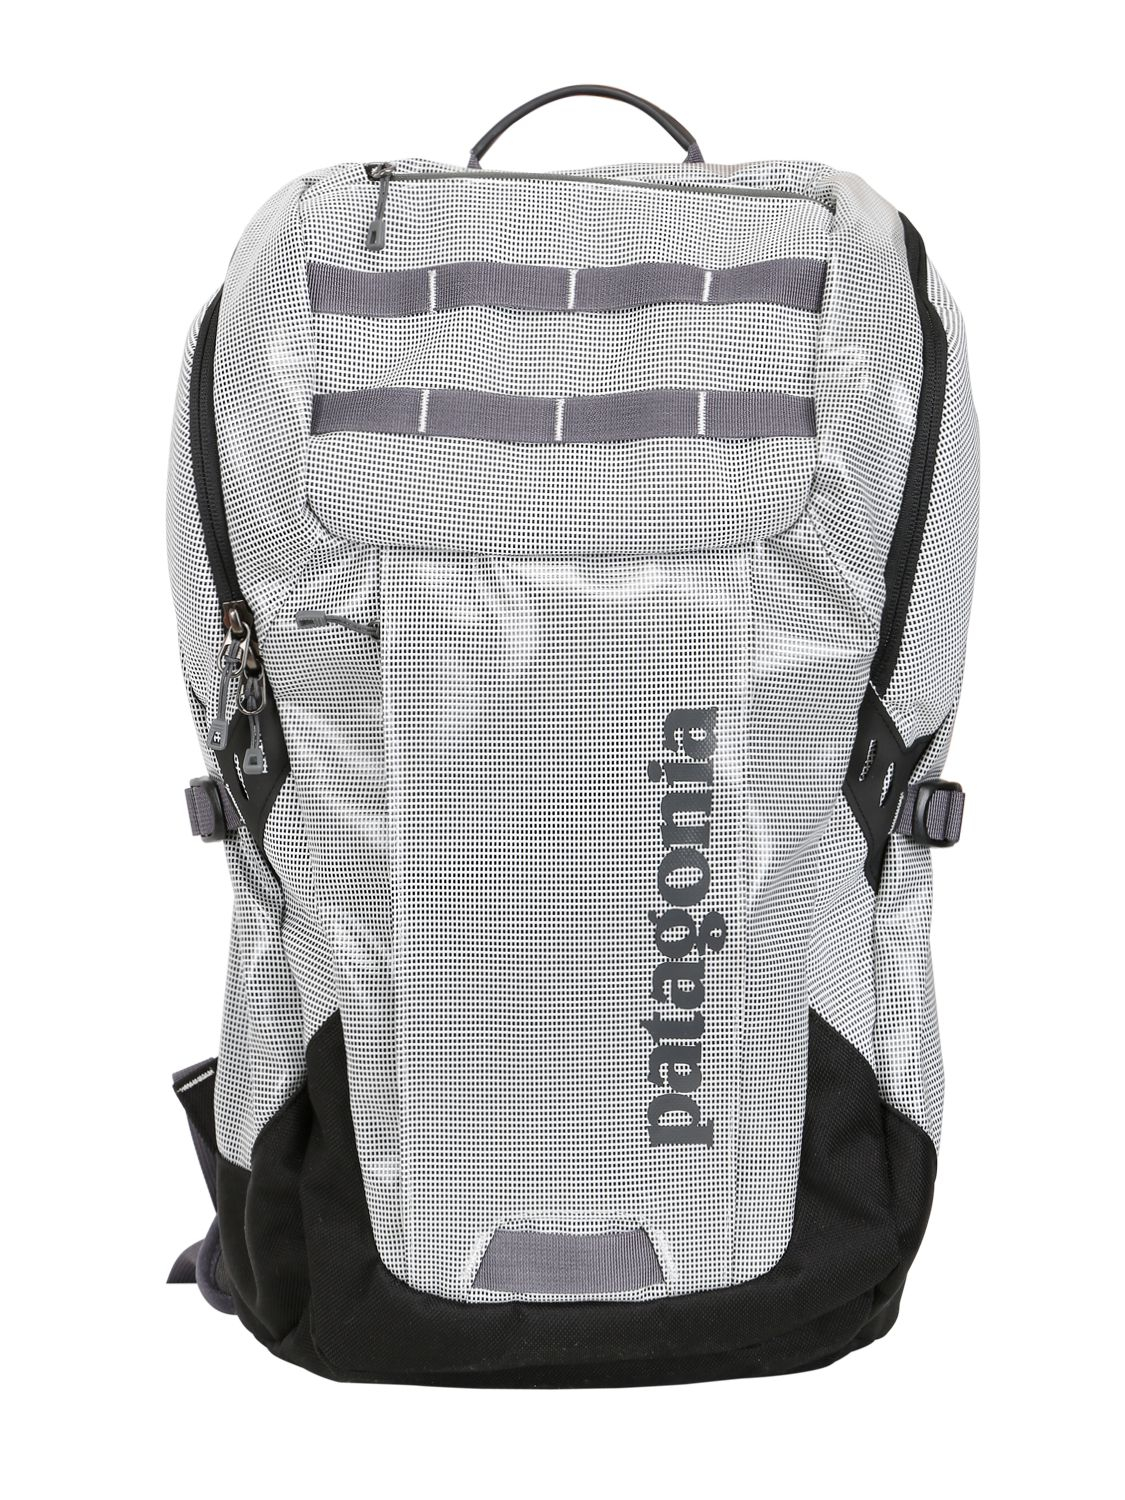 Patagonia Black Hole Backpack In White For Men Lyst